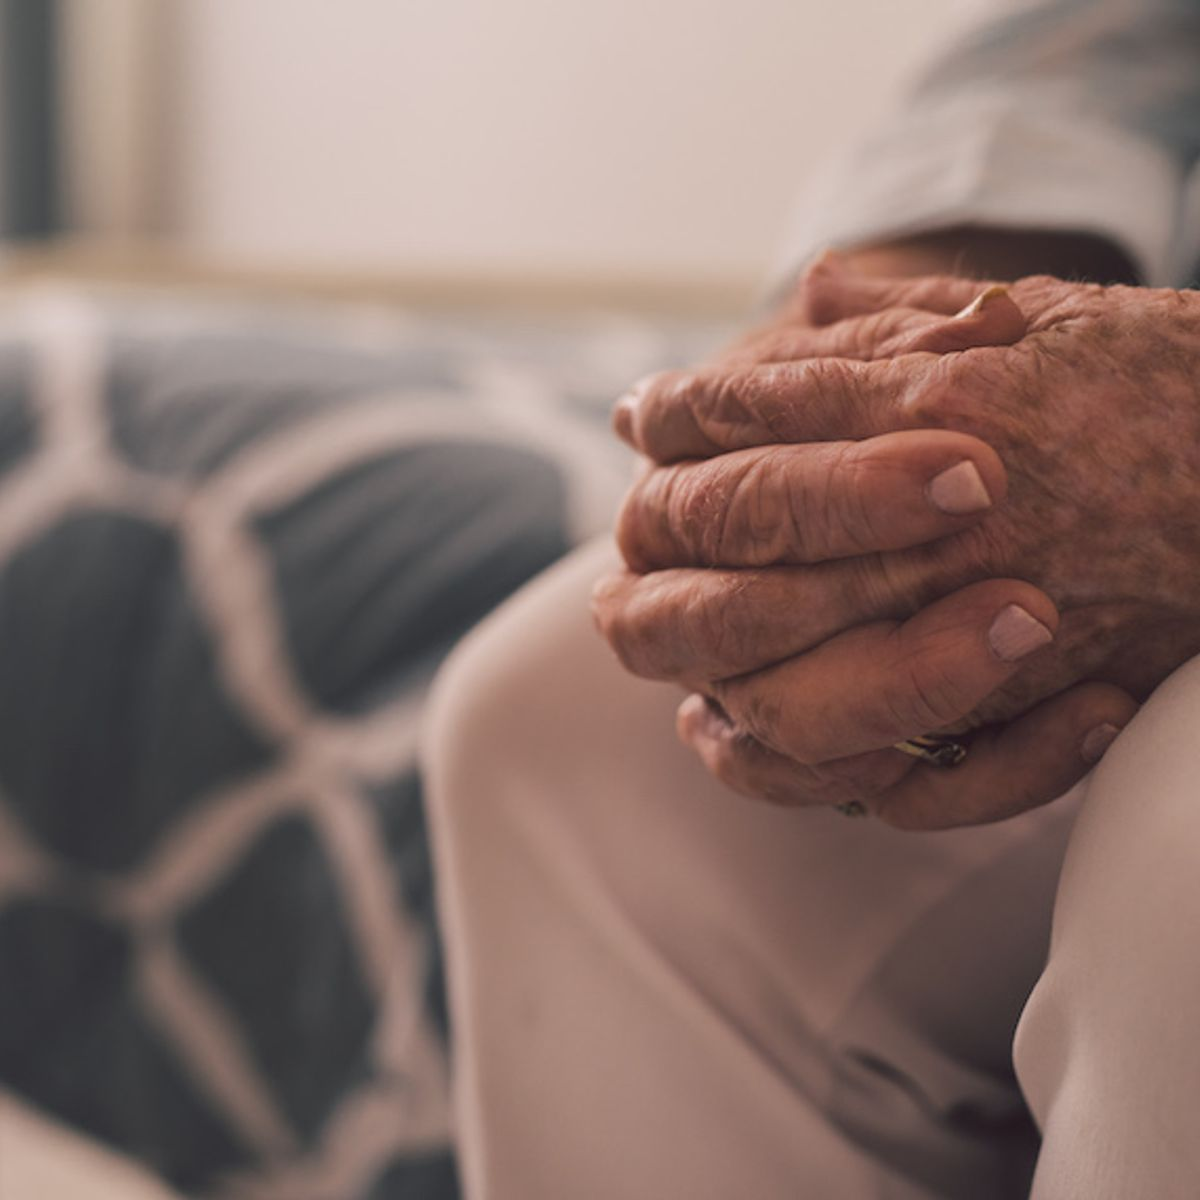 Bugs, mold and unwashed hands: Rampant safety violations in nursing home kitchens endanger residents